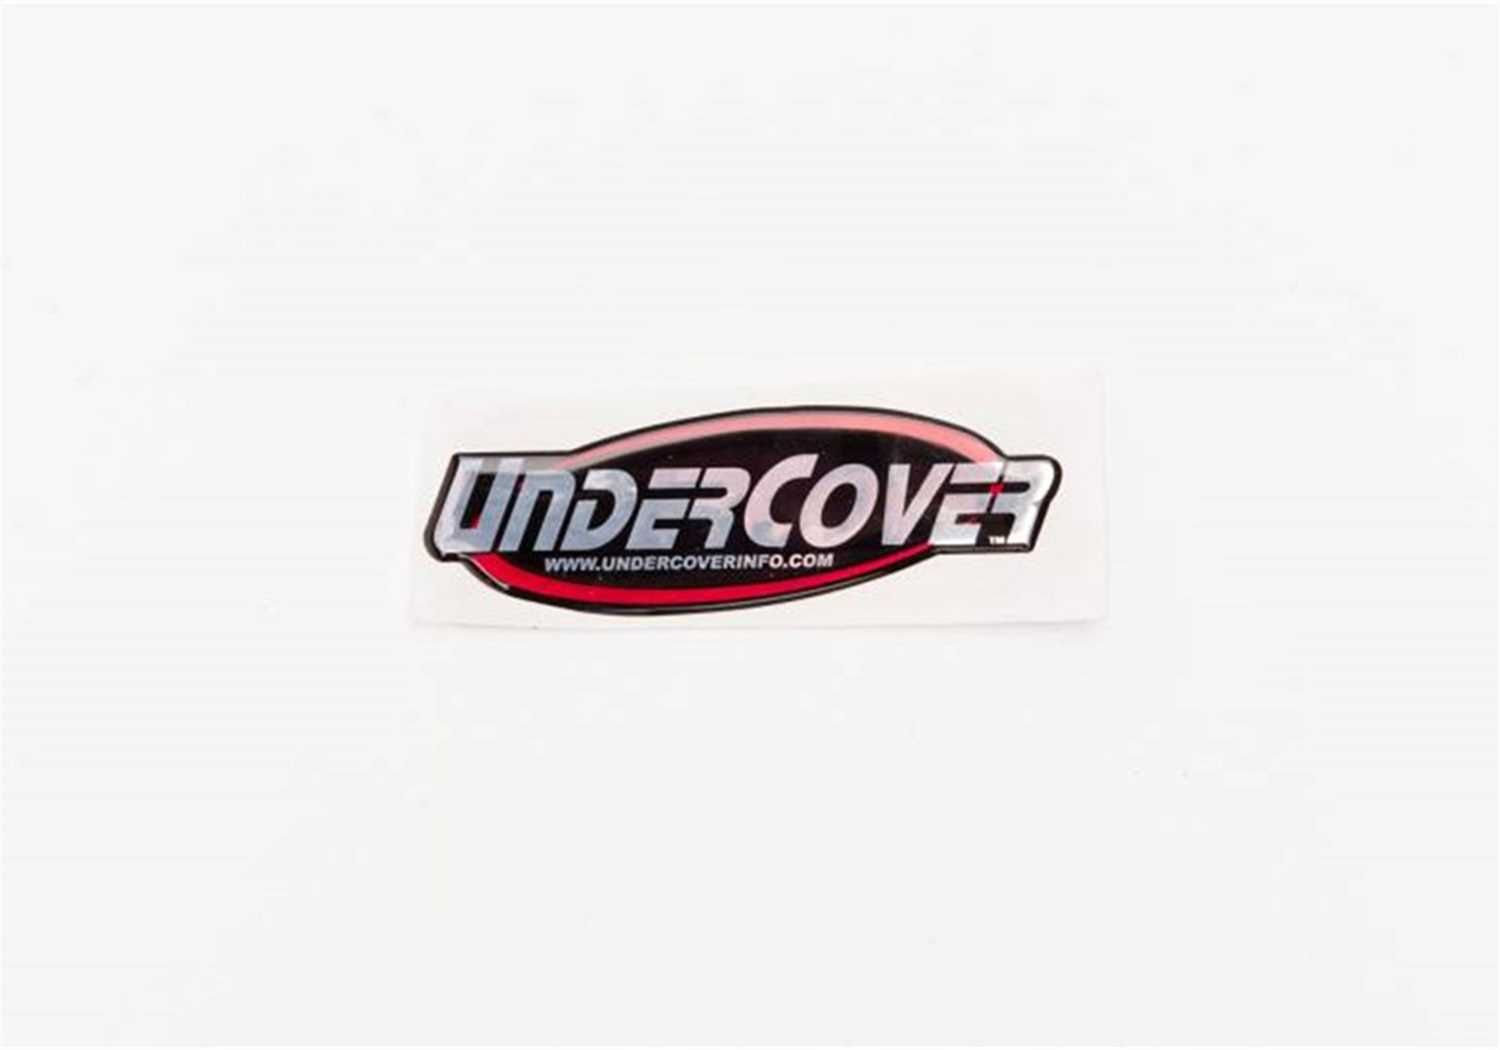 Undercover Logo - Undercover Logo Decal - Pickup Heaven